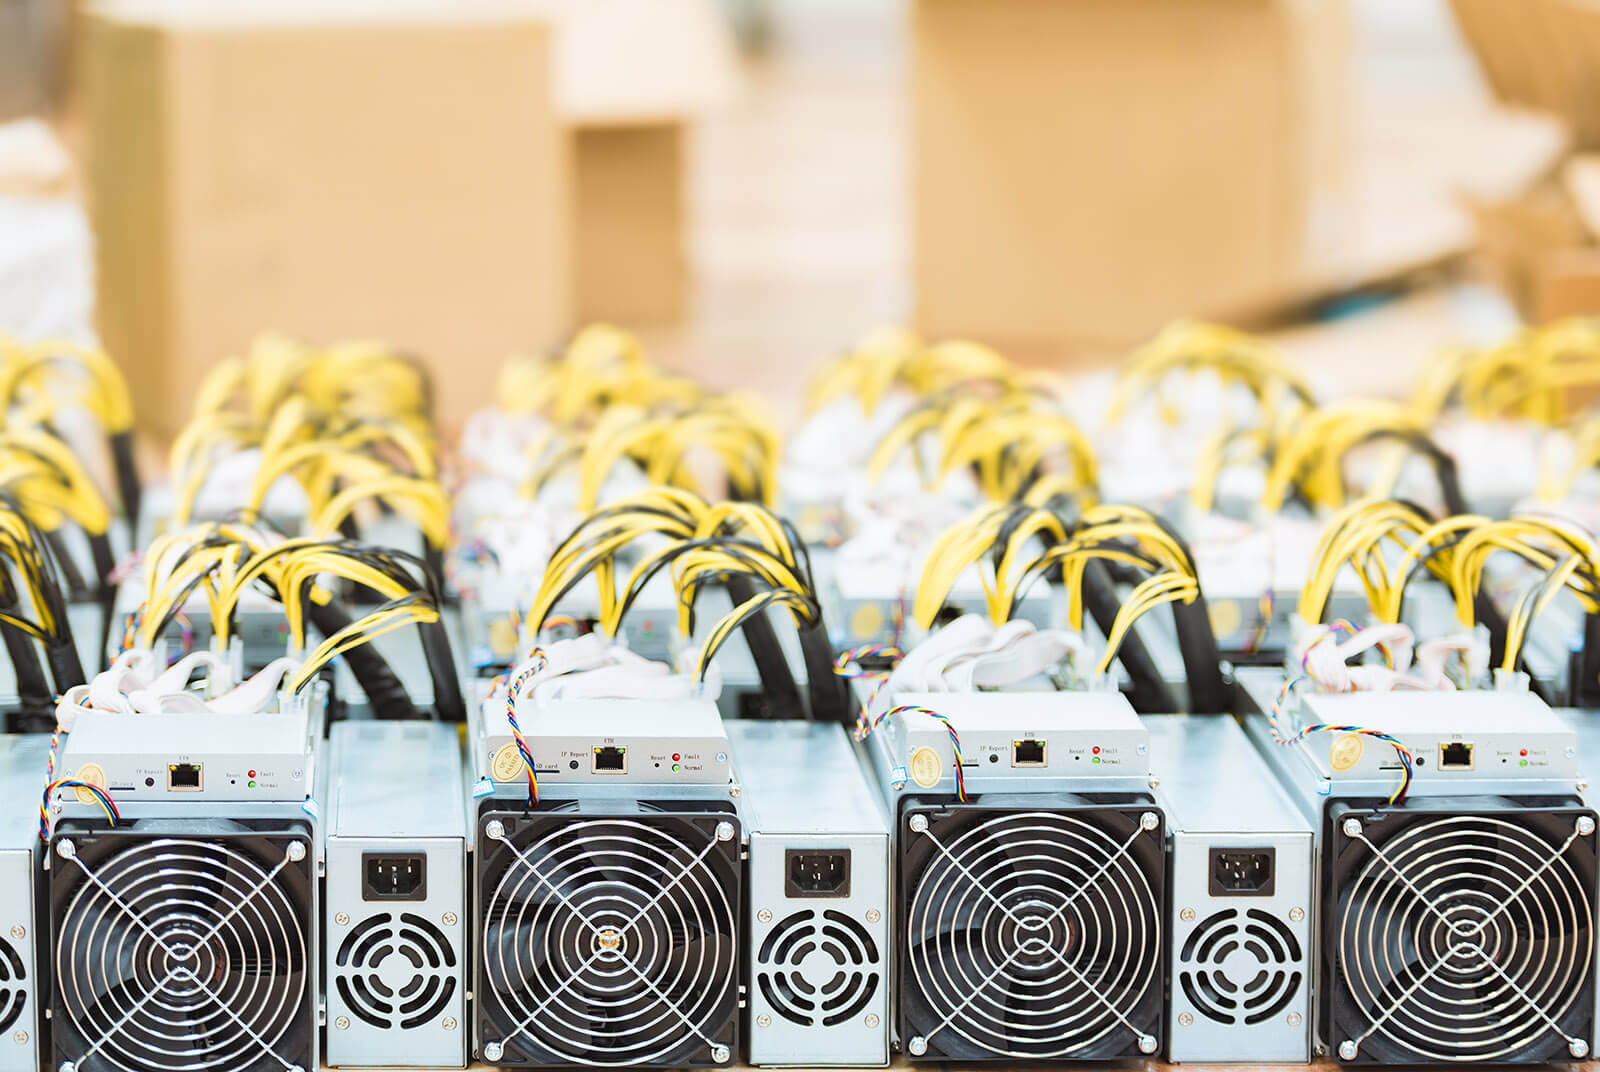 most powerful bitcoin miner